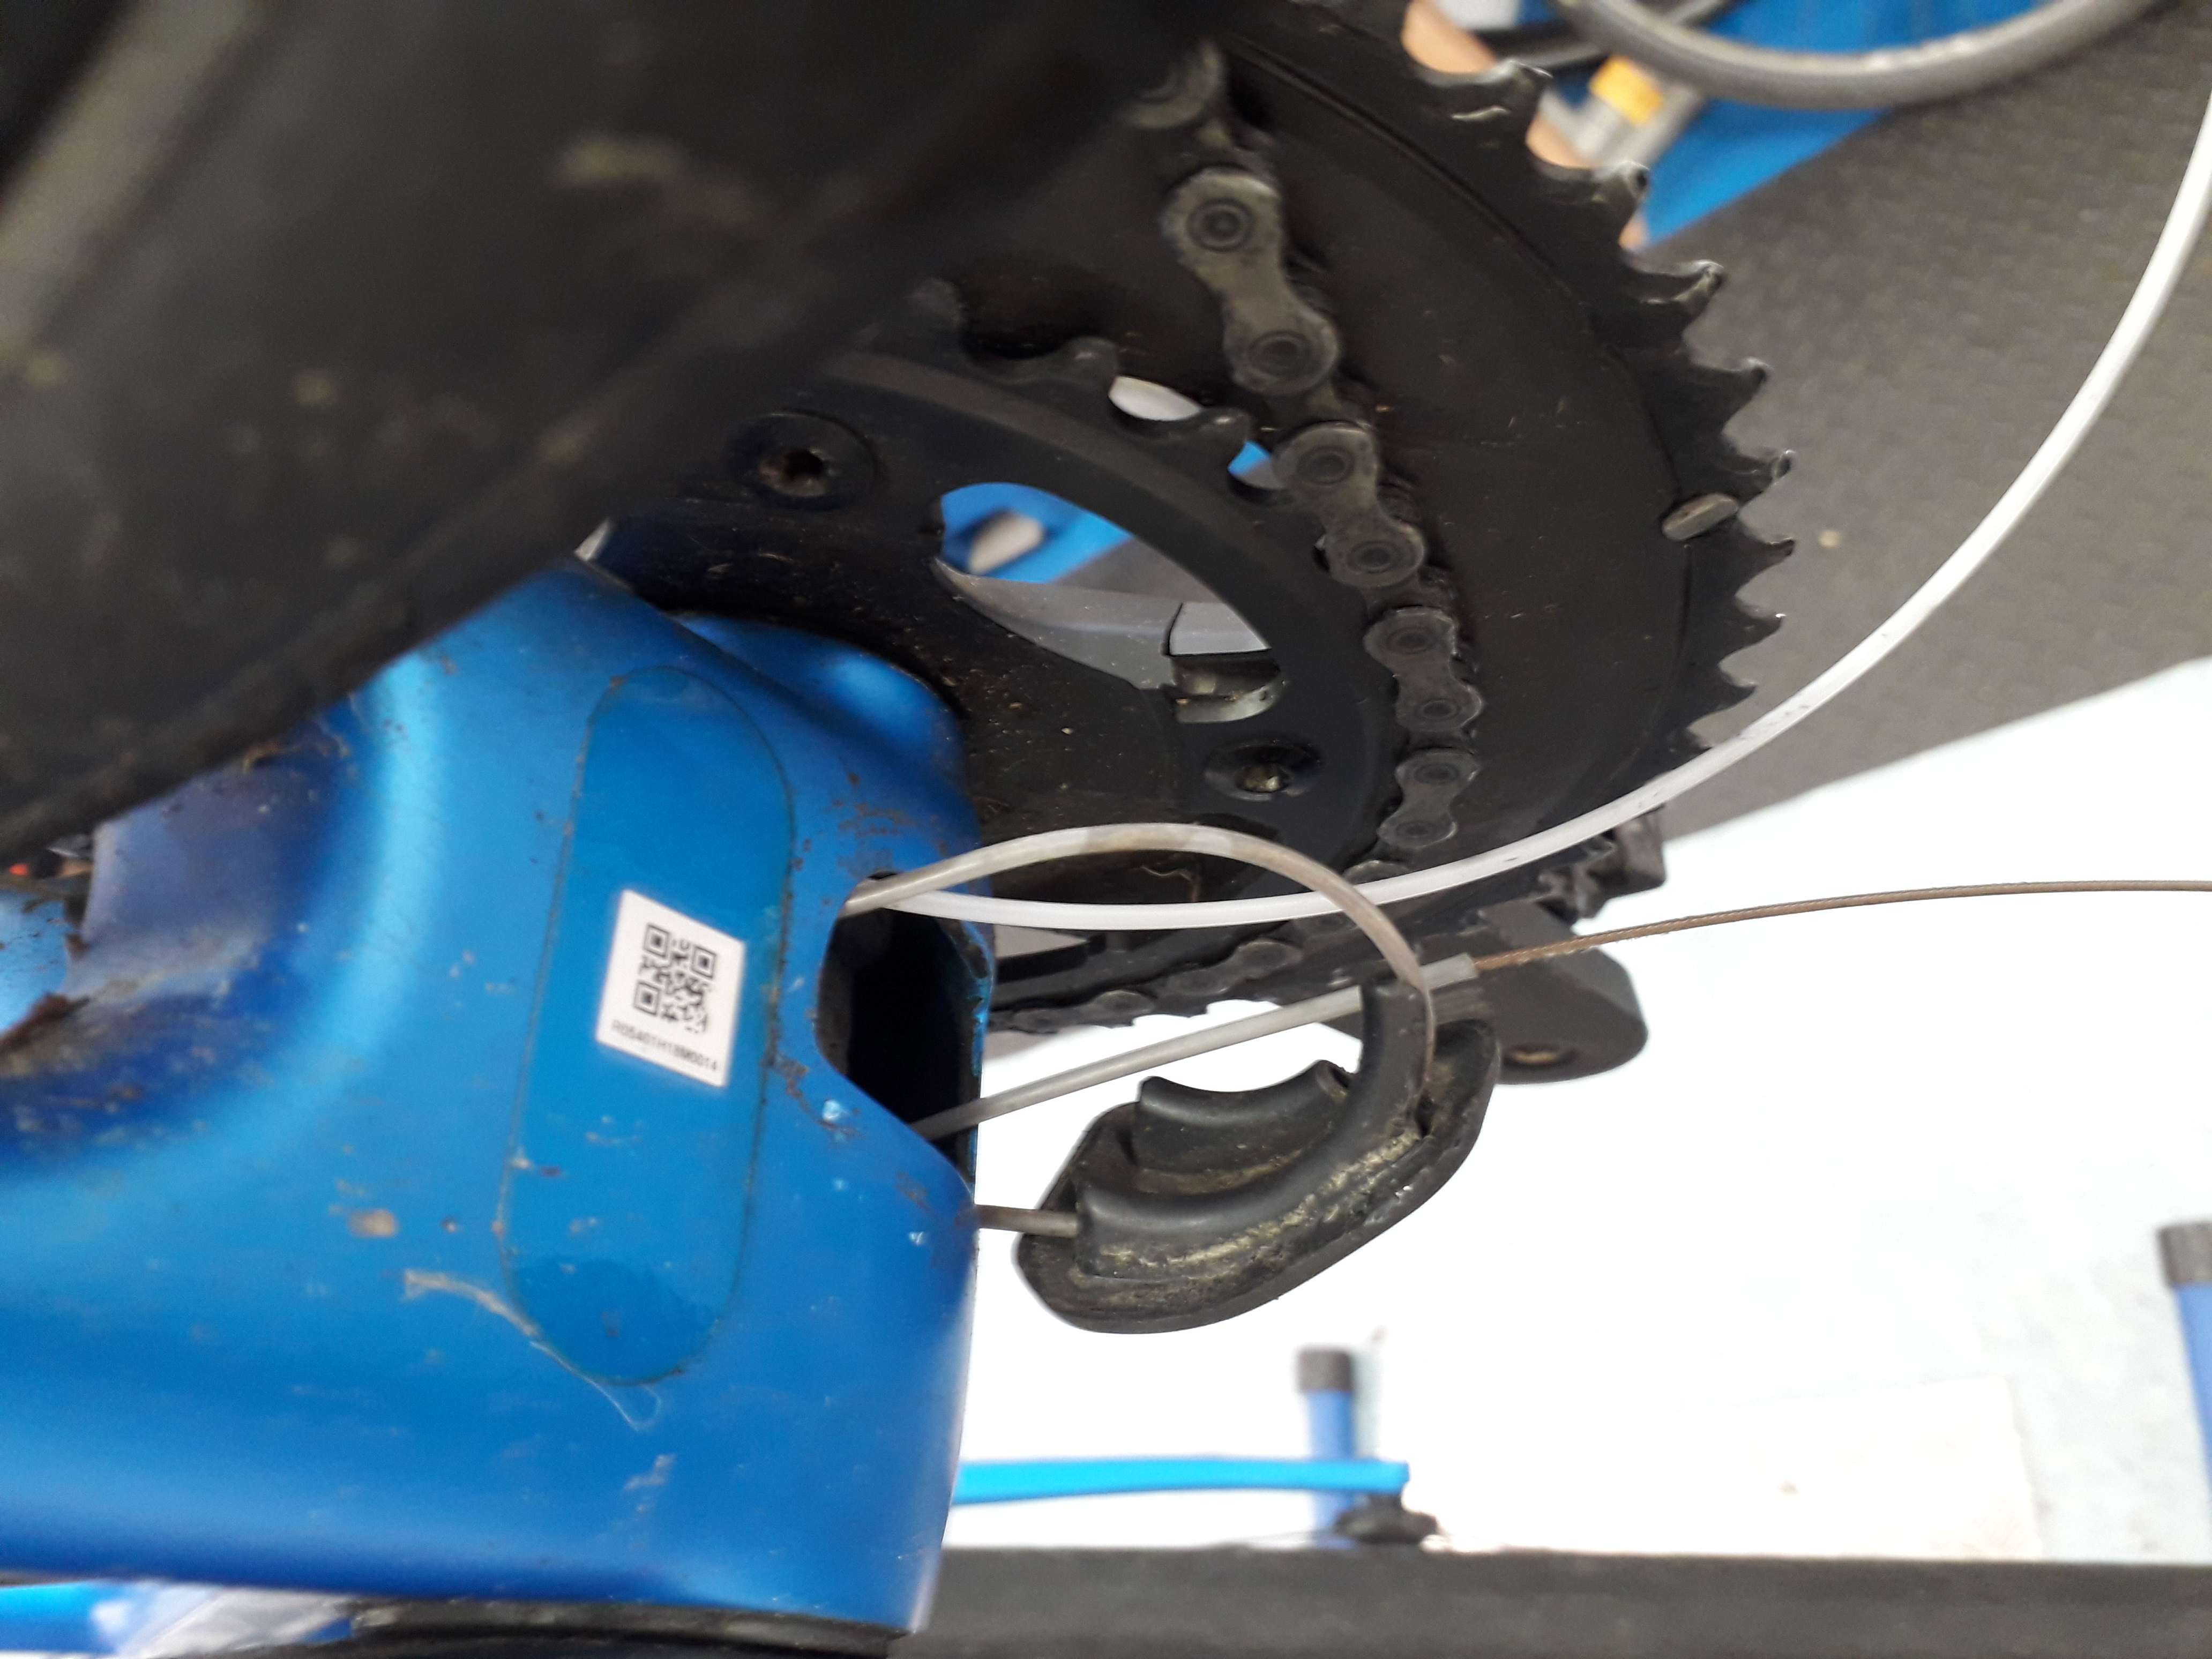 Fitting new internal cables